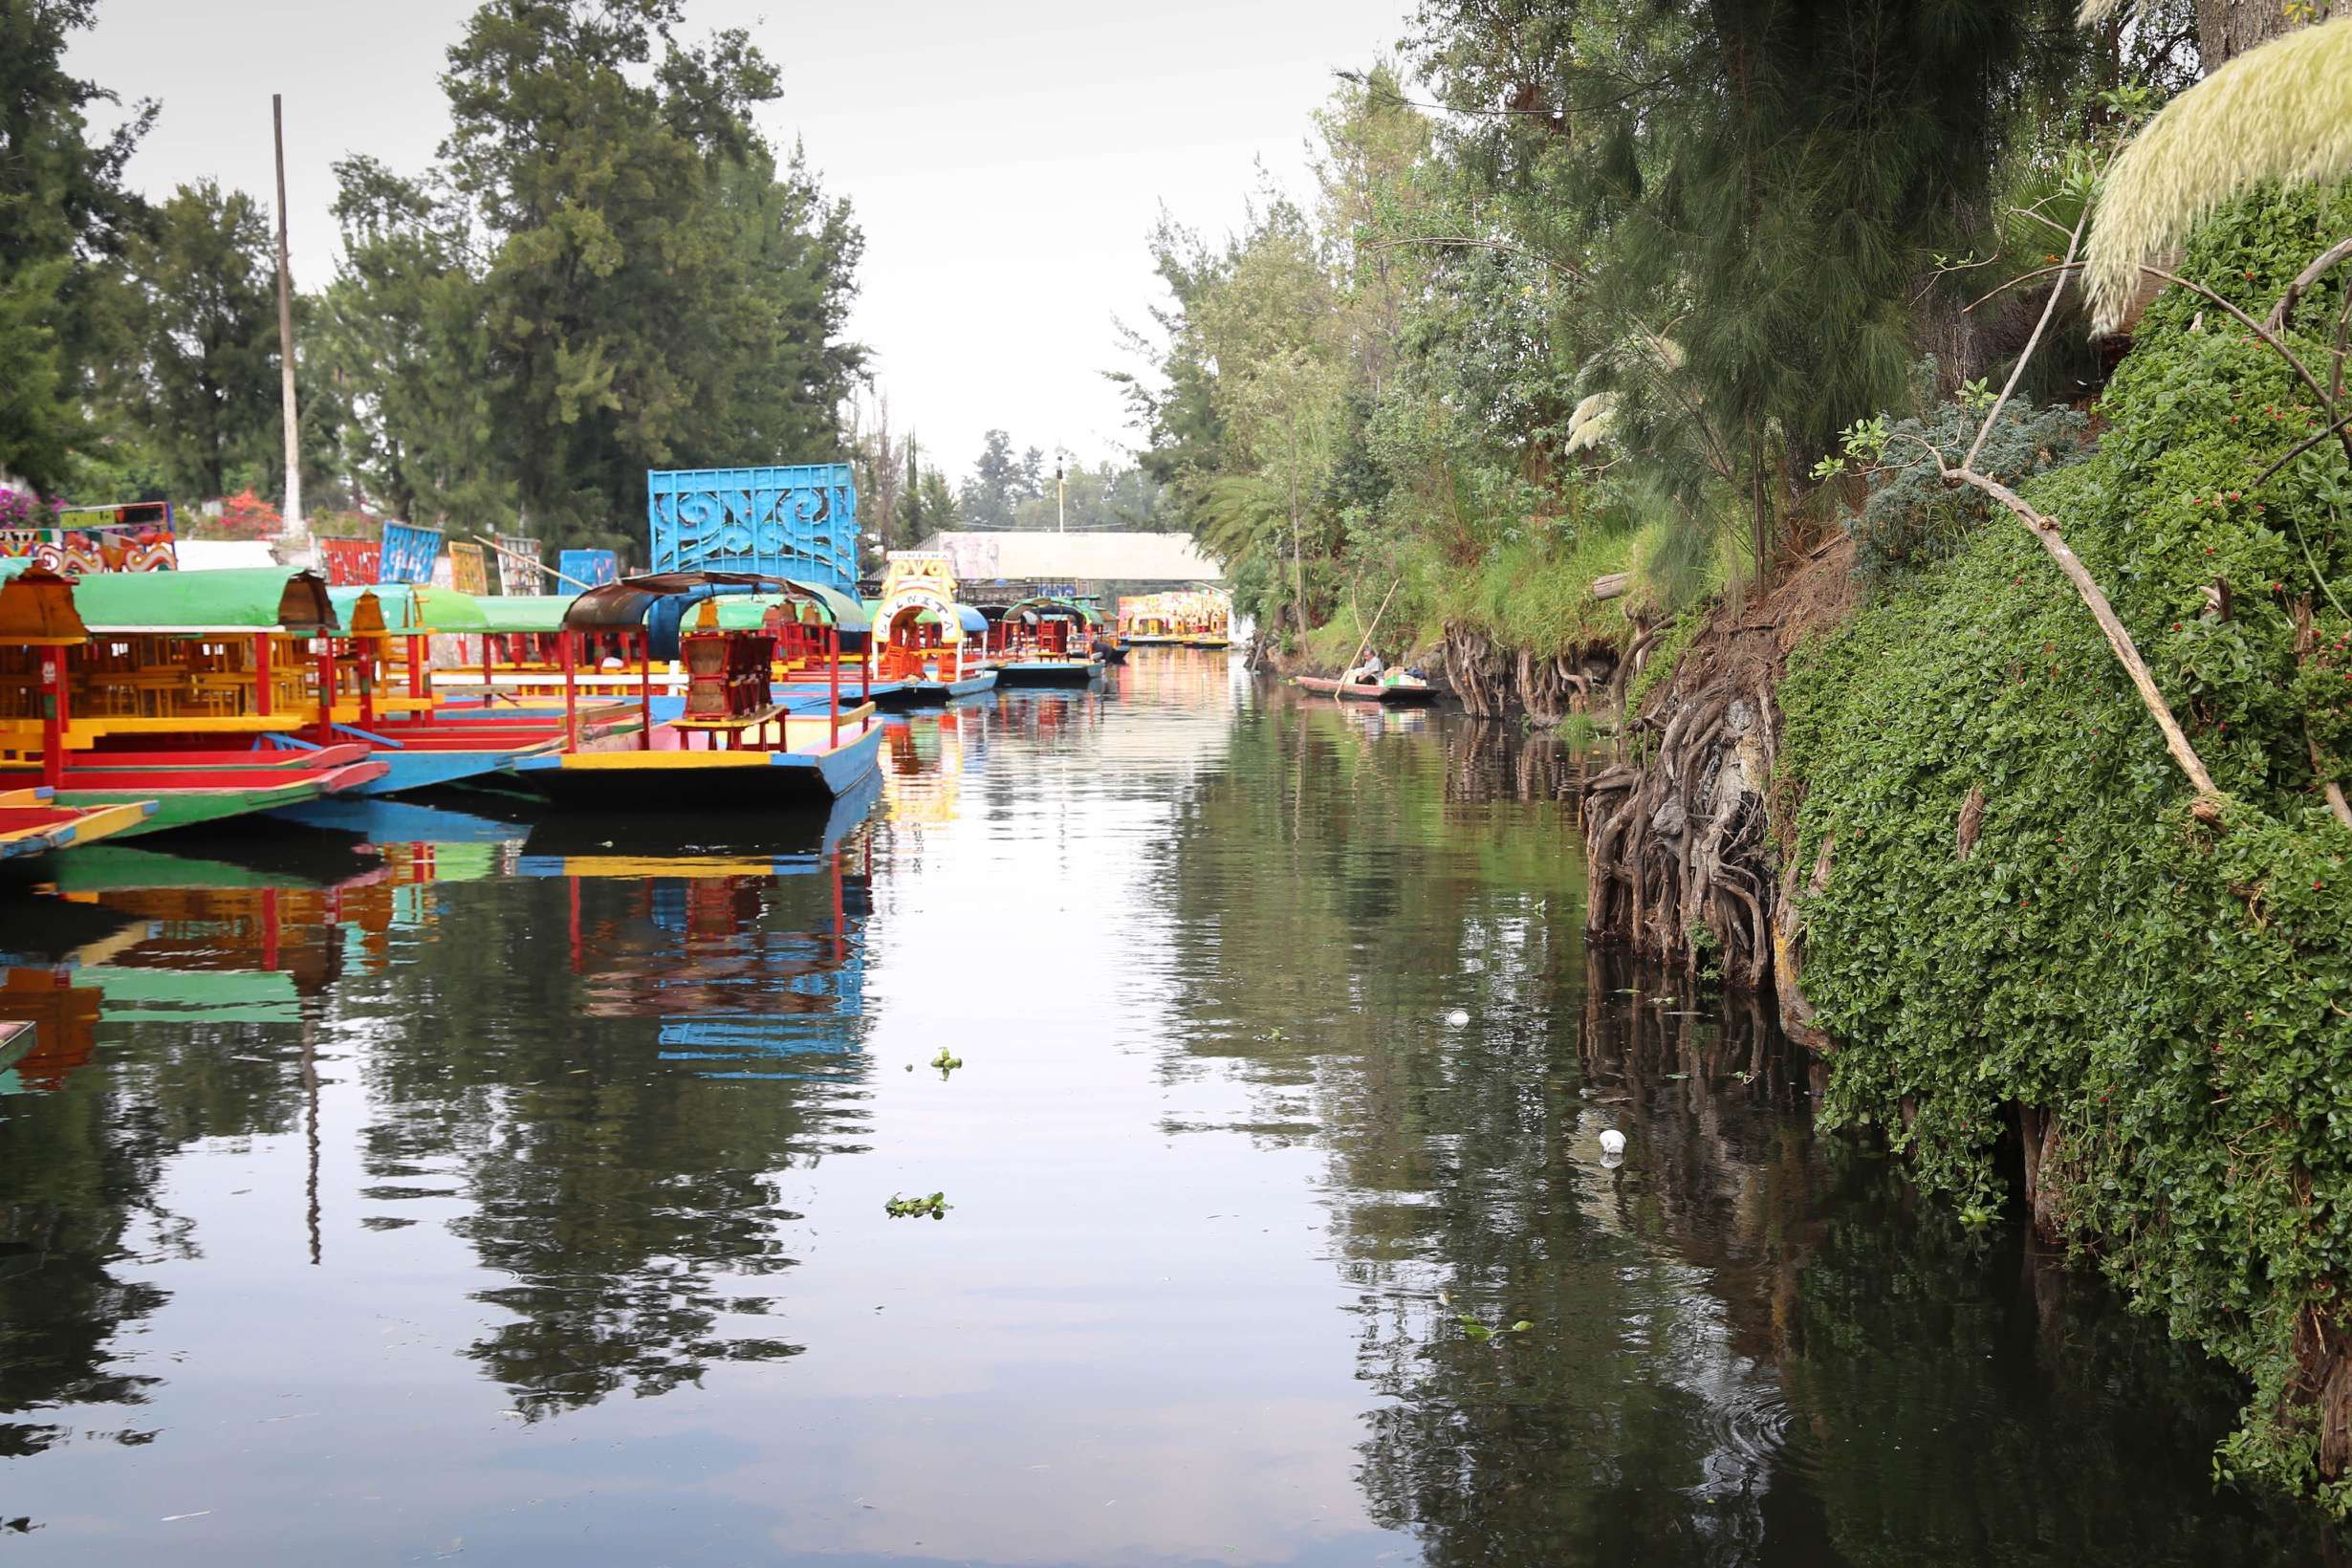 Trajineras are poled along the canals at Xochimilco as visitors relax and while away an afternoon.